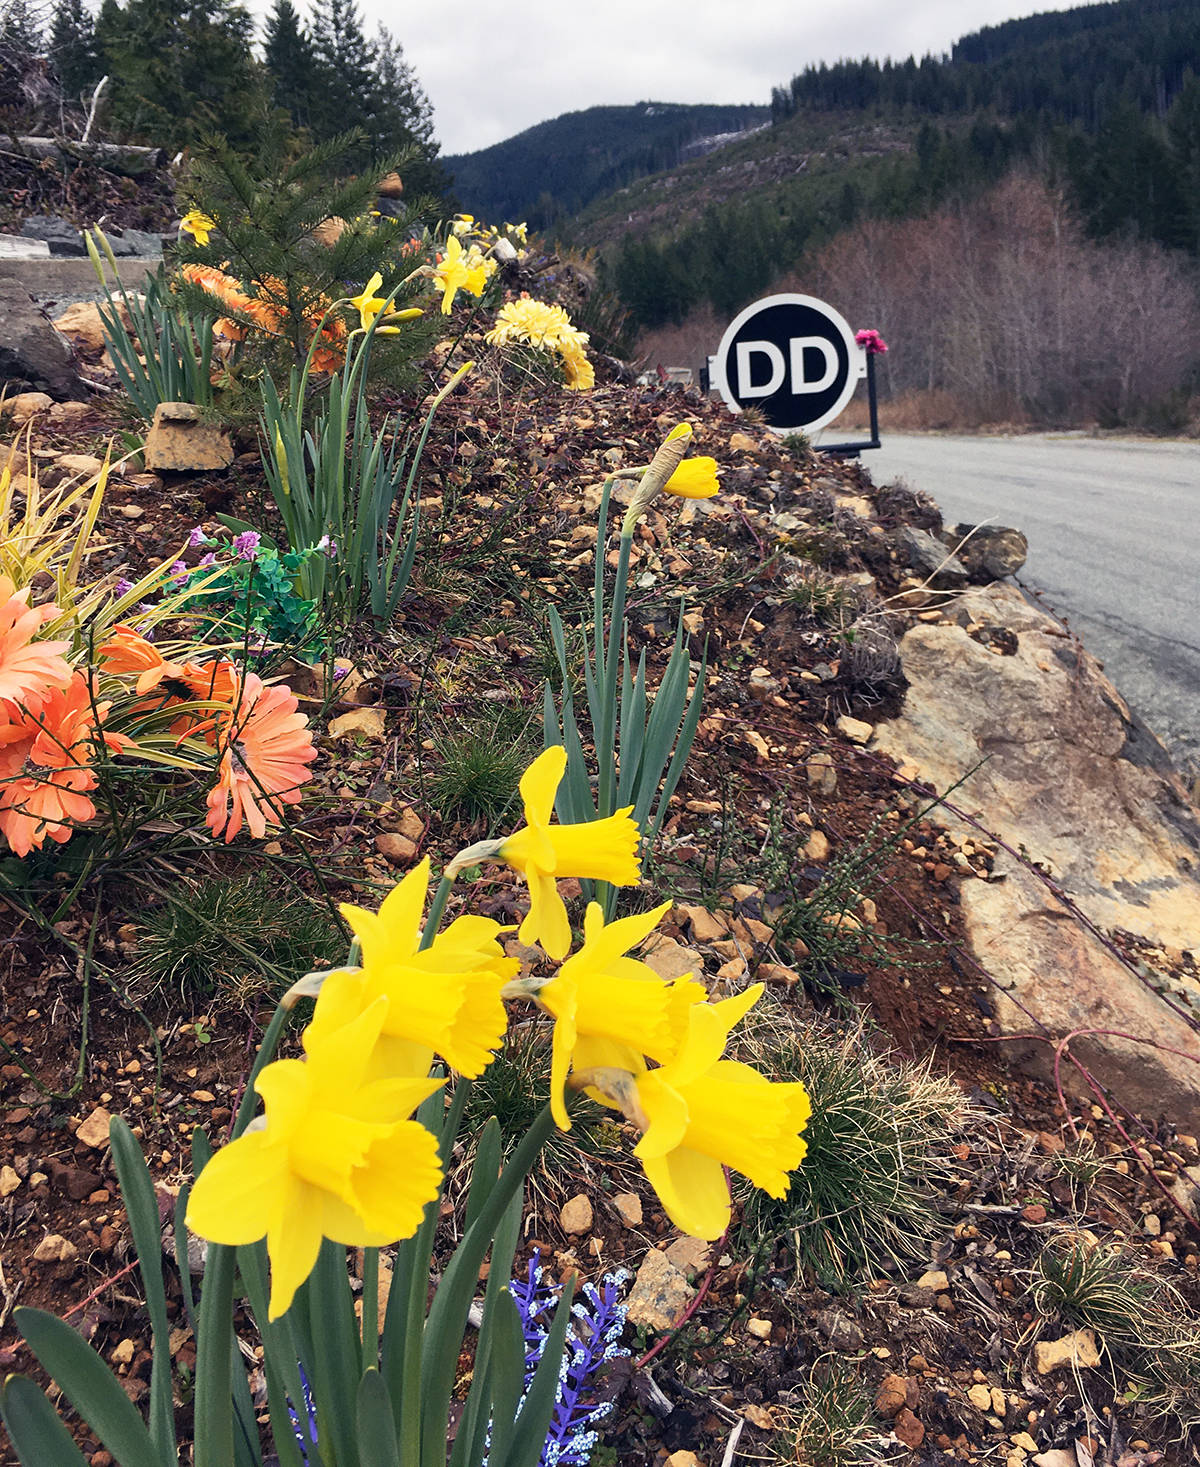 The DD Memprial site on the road to Port Renfrew has grown into a great park and garden setting. (Photo submitted)